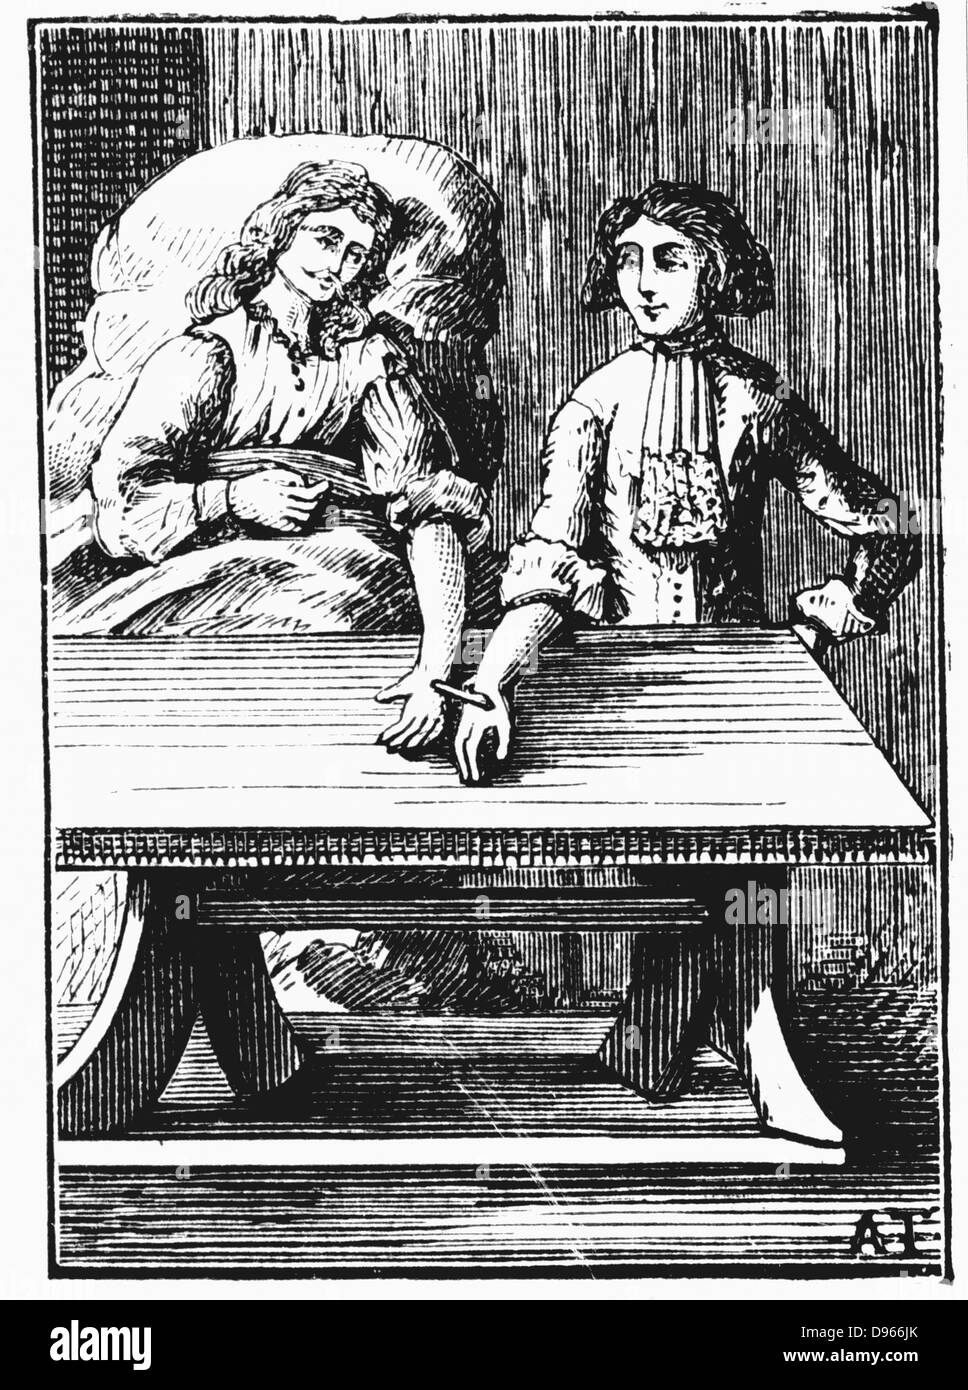 Direct person-to-person blood transfusion at the wrist. After engraving from George Abraham Mercklino 'Tractatio - Stock Image